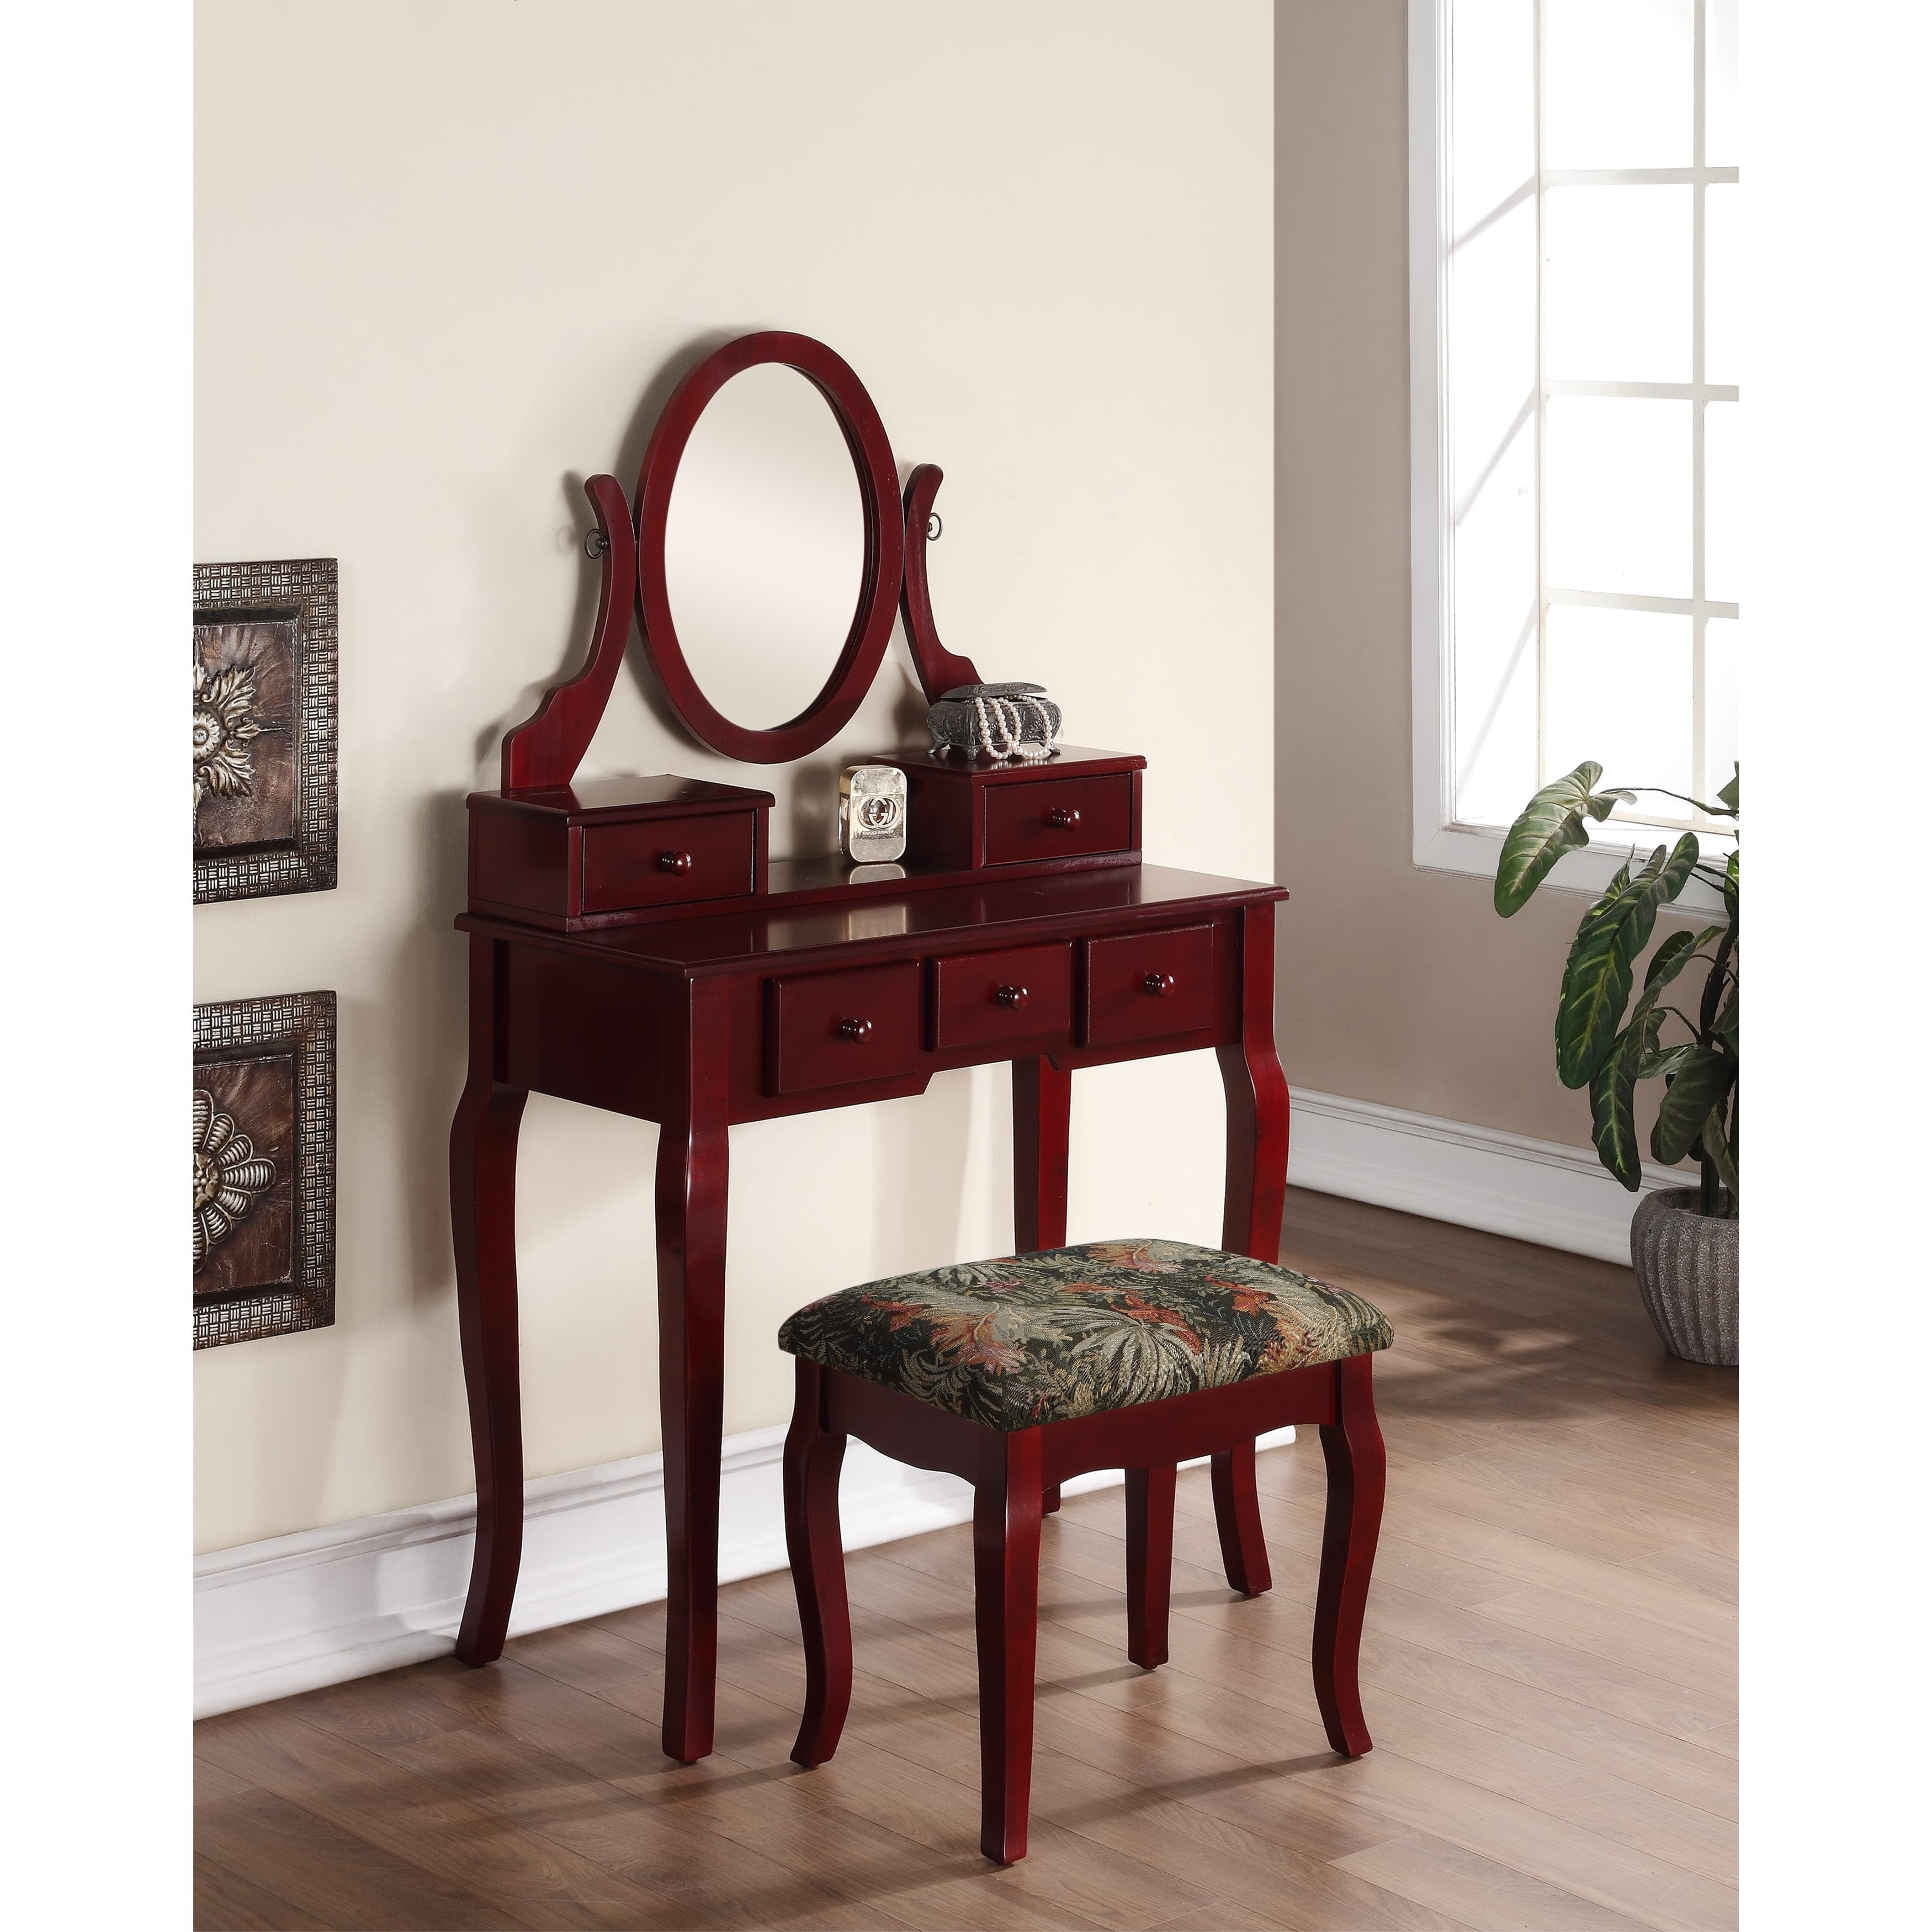 Ashley Wood Cherry Makeup Vanity Table and Stool Set (Che...